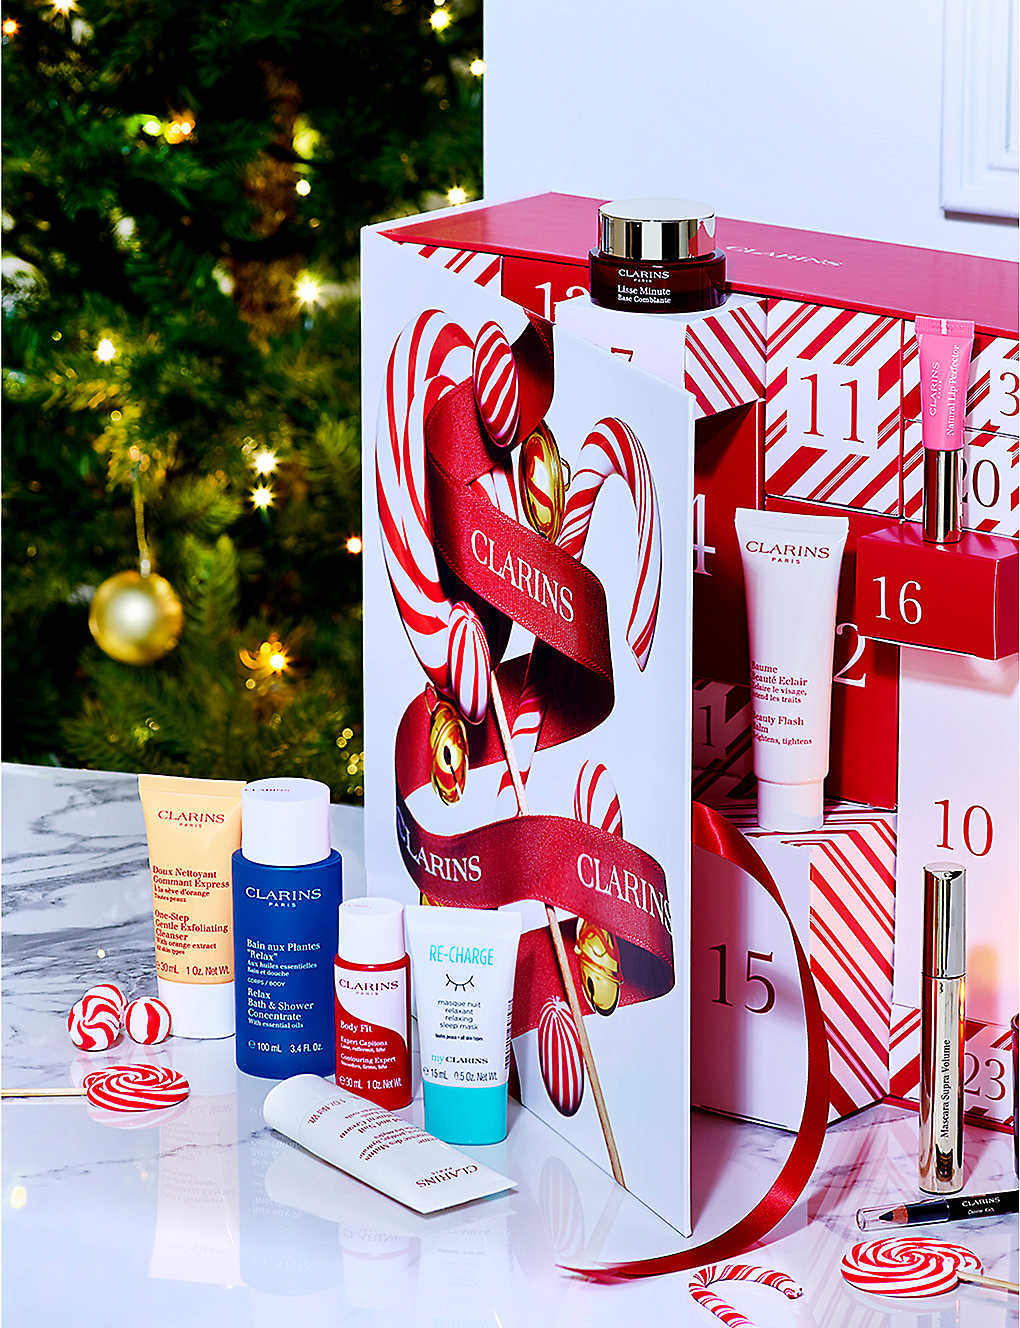 Clarins x Selfridges Advent Calendar 2020 Contents Reveal!